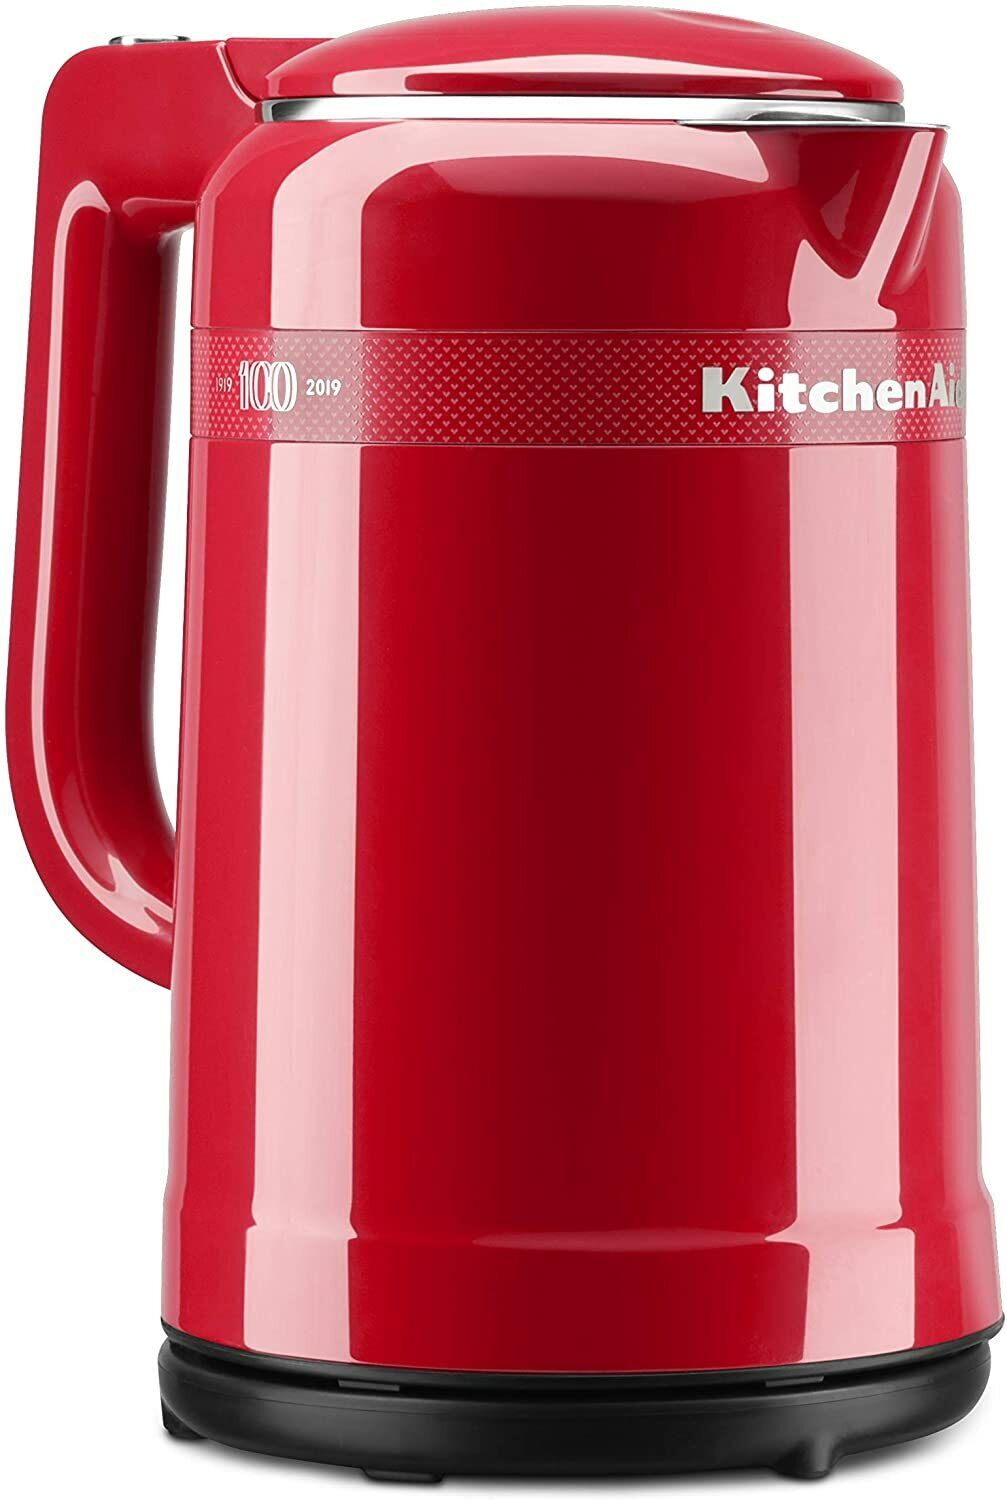 KitchenAid 100 Year Limited Edition Queen of Hearts Electric